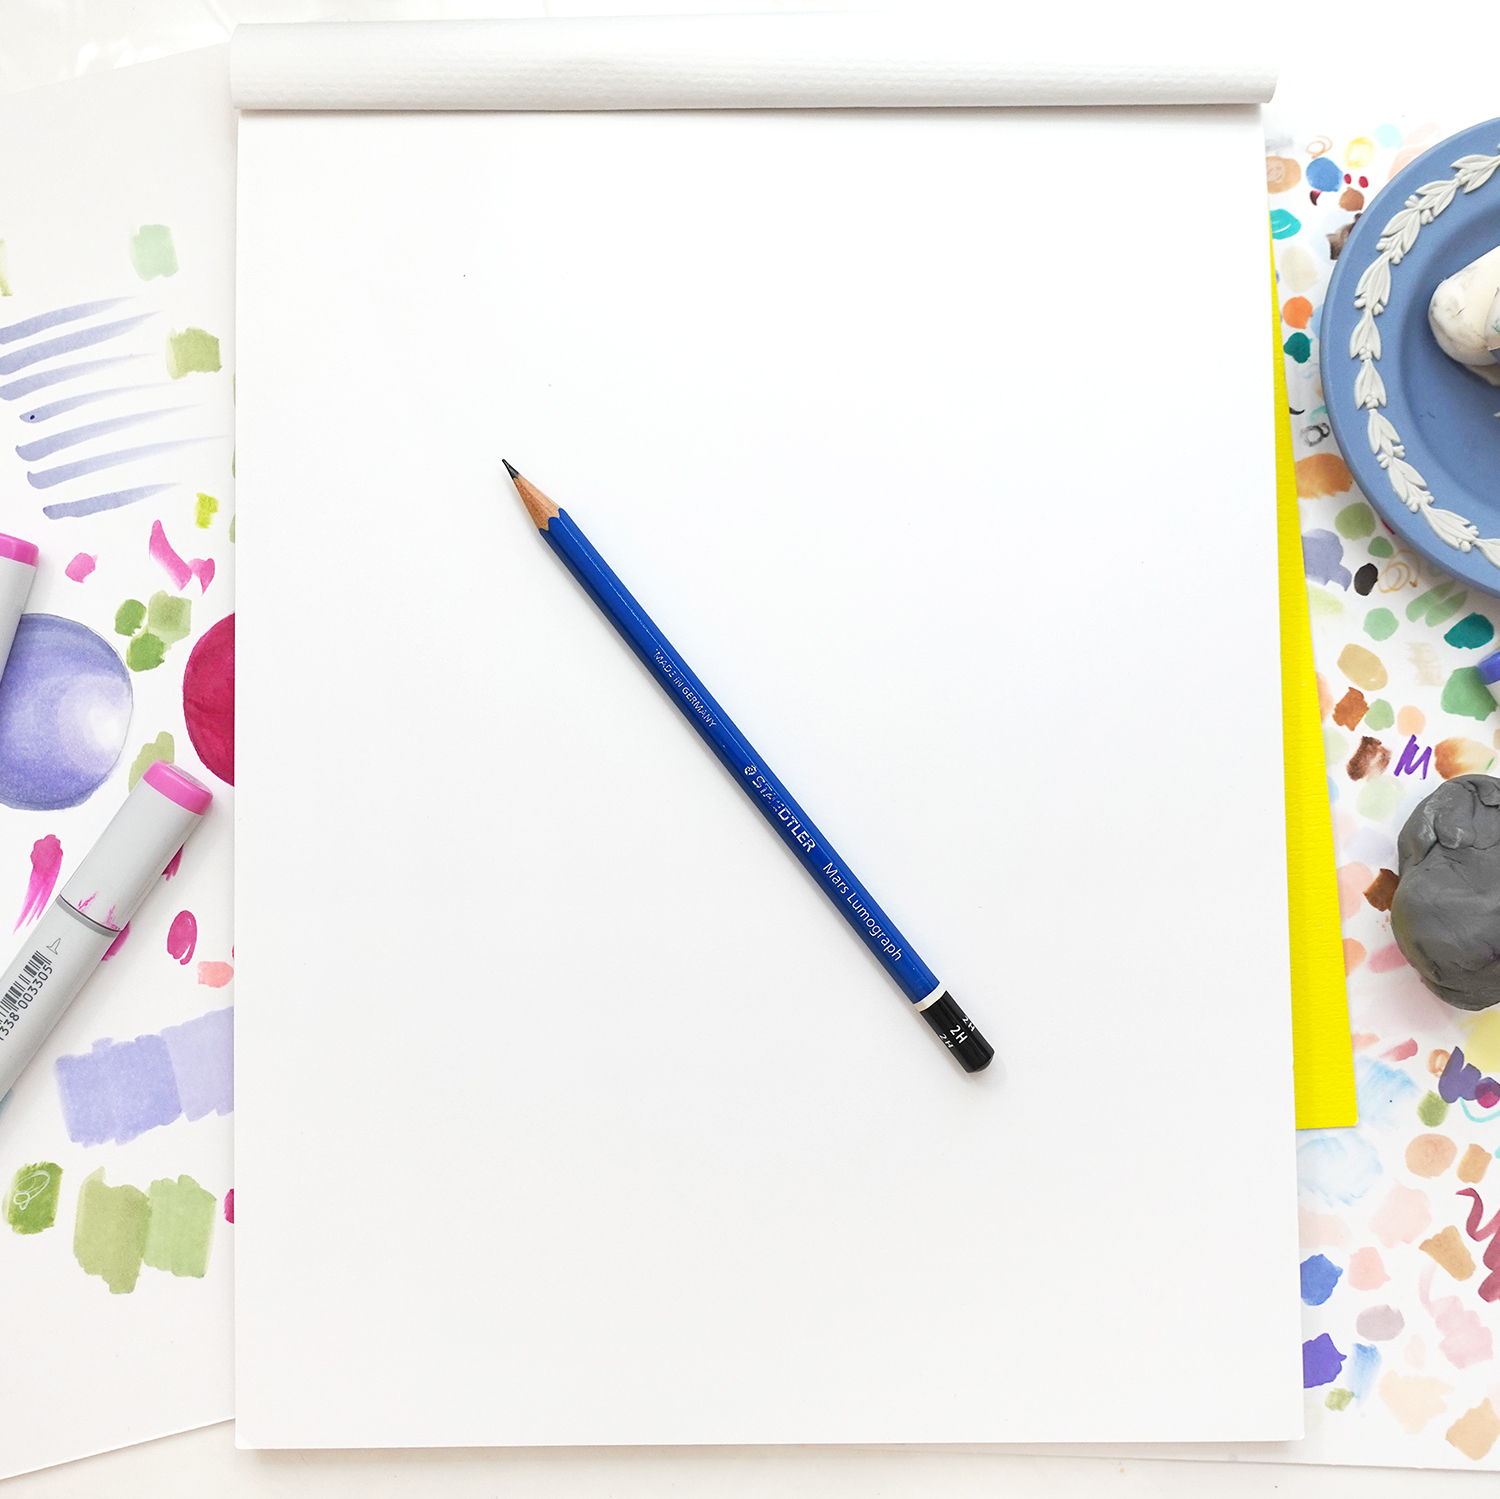 Overcoming Blank Page Overwhelm - Creative Tips by Joanna Baker